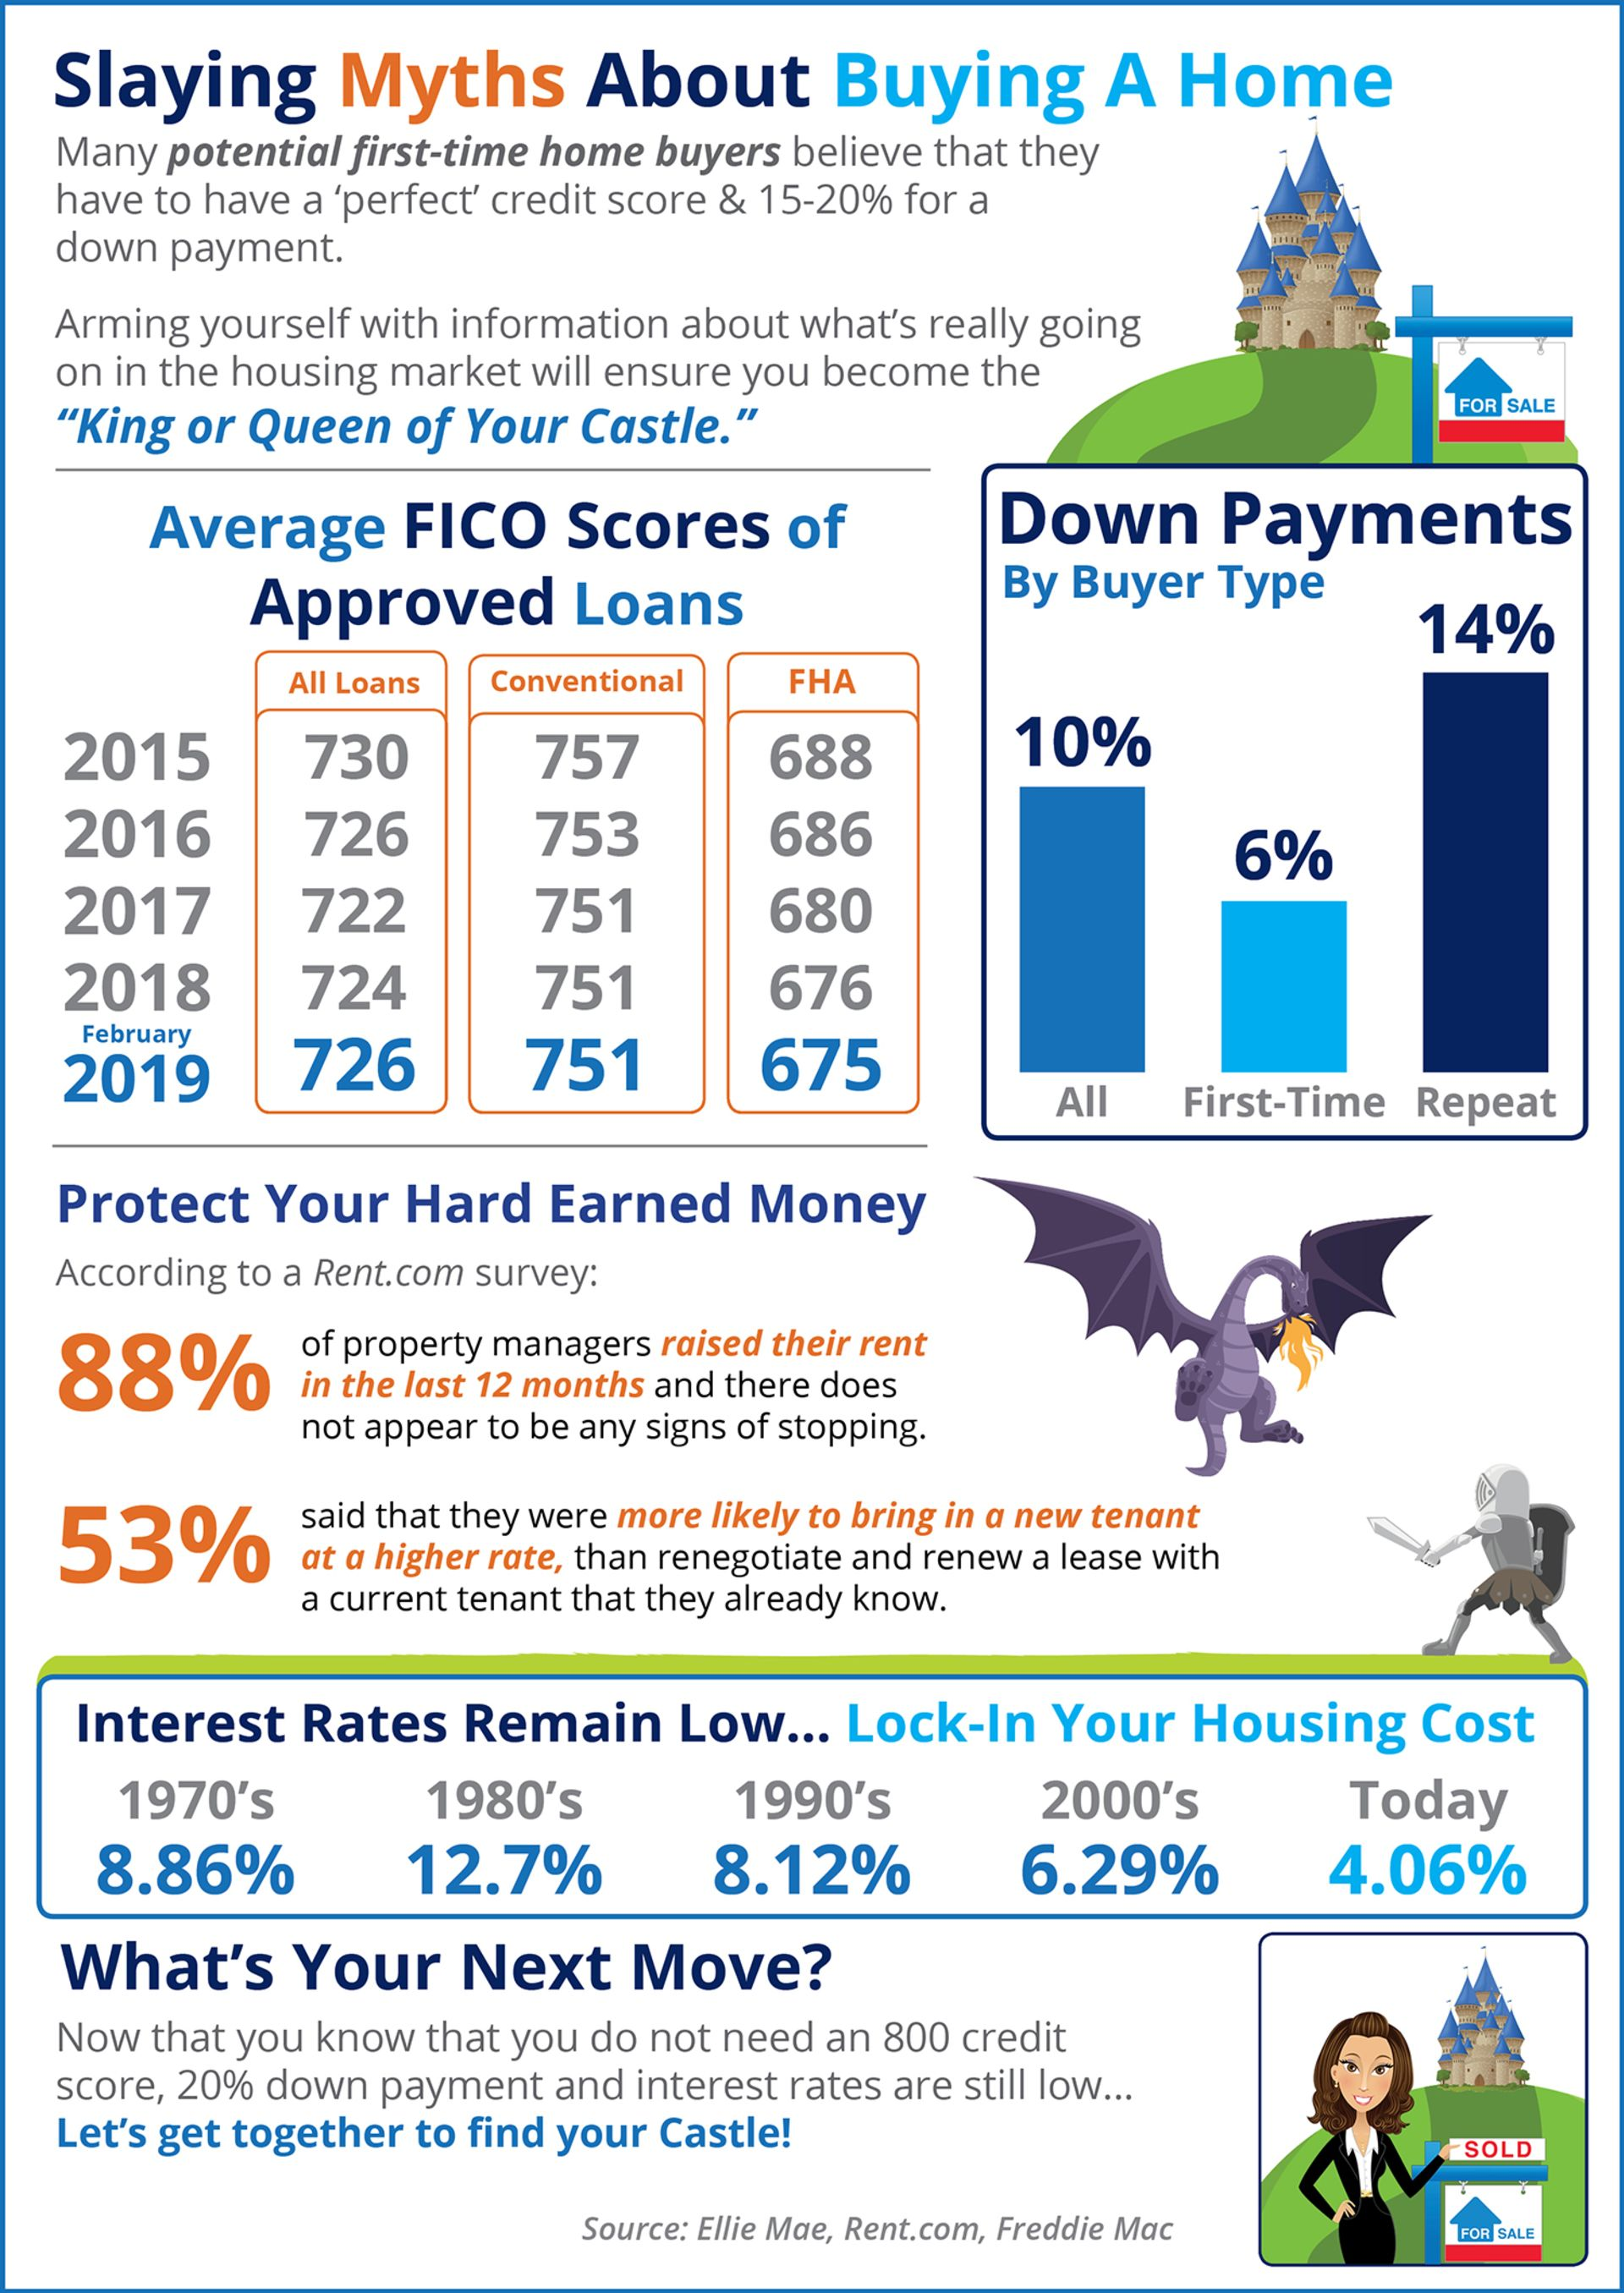 Slaying the Most Homebuying Myths Today